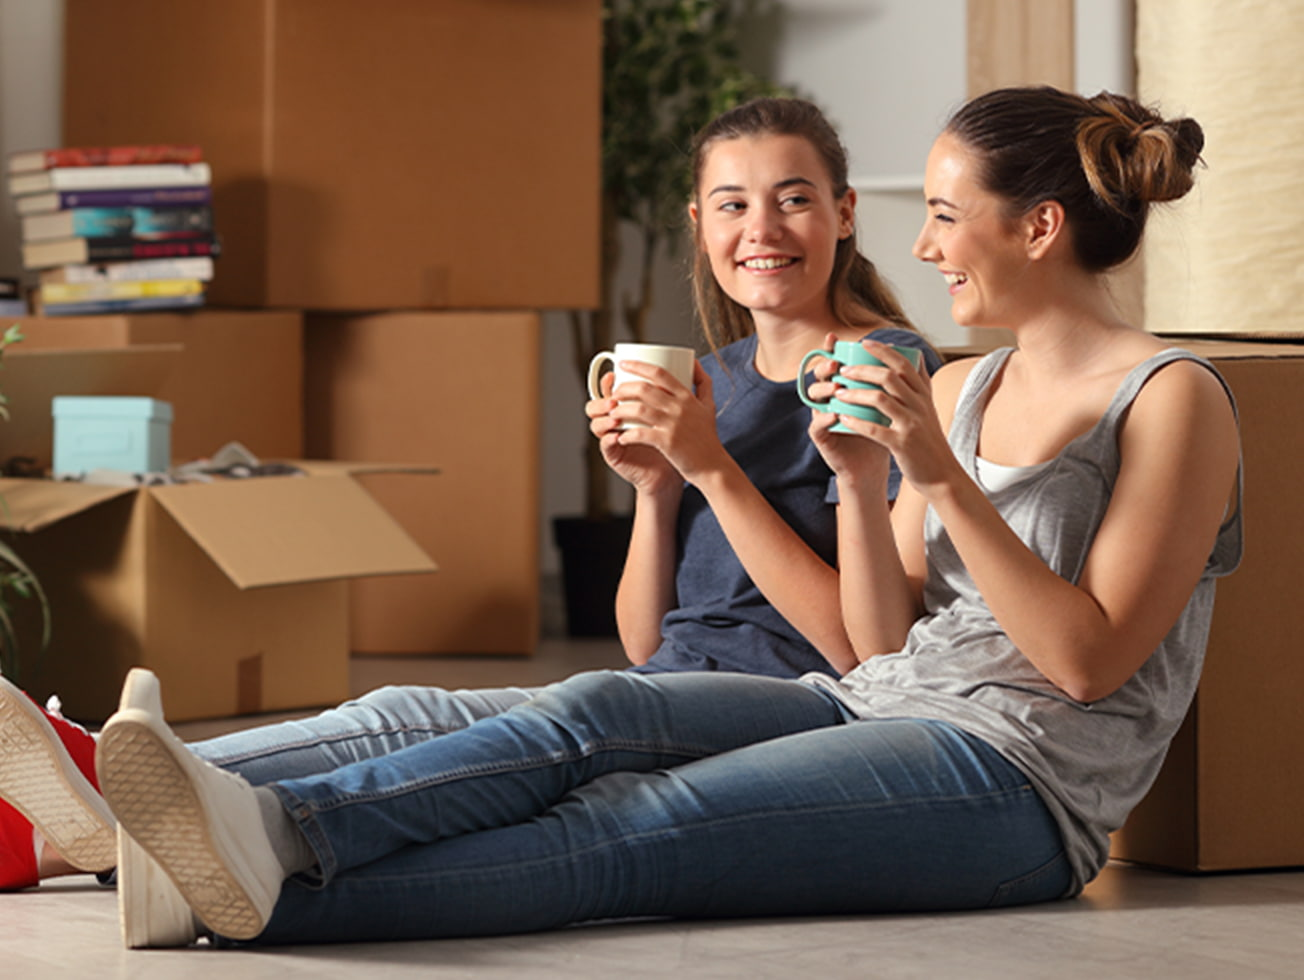 Two young women unpacking boxes after moving home and internet